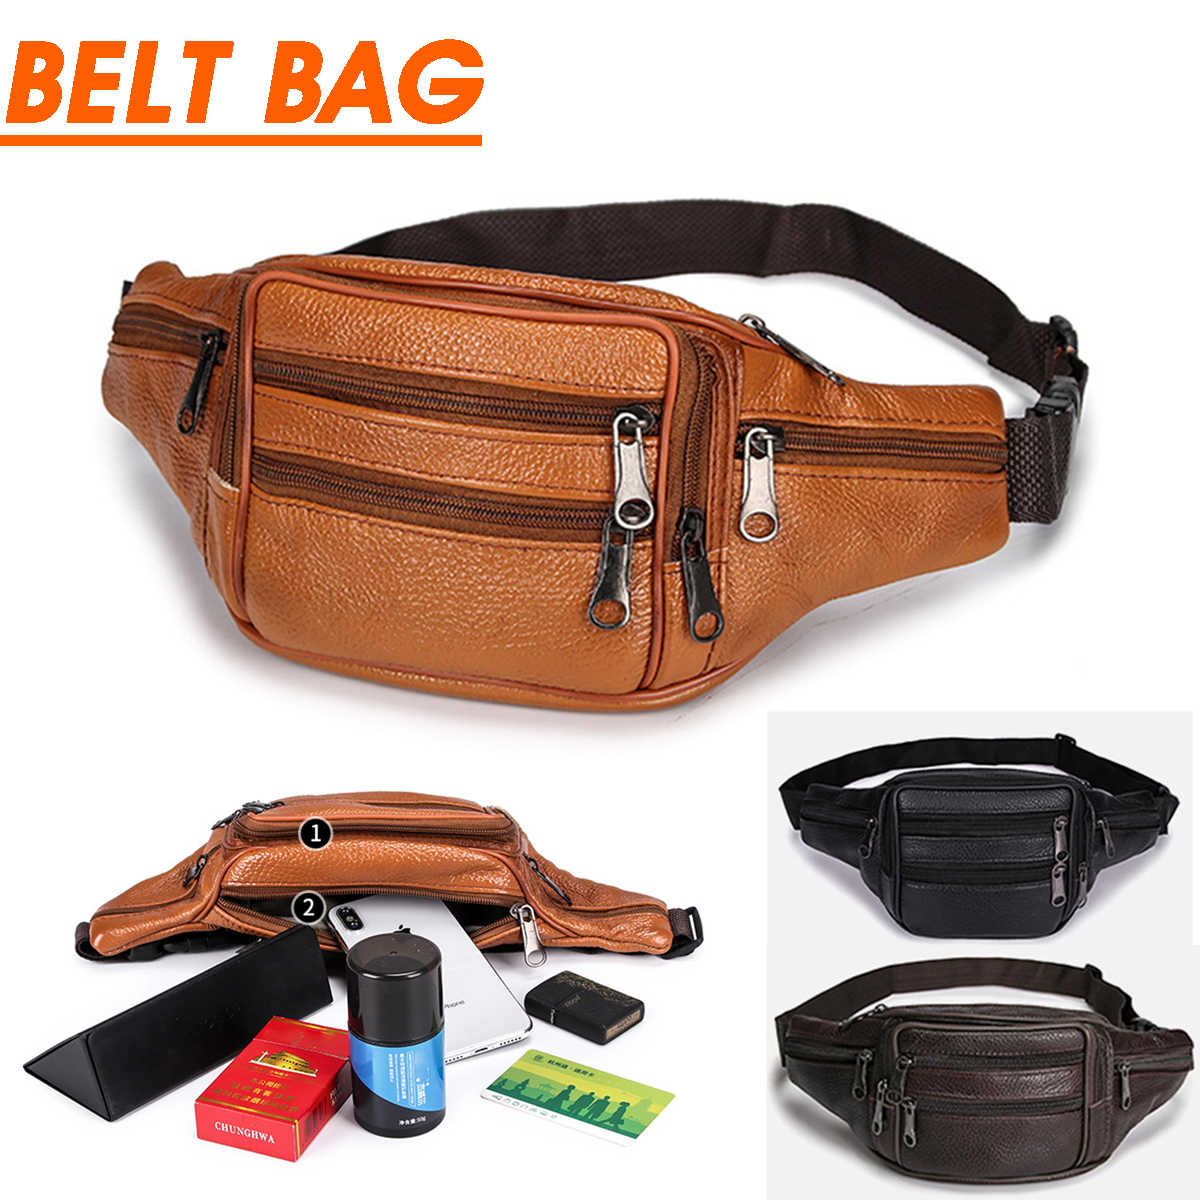 Portable Male Men's Vintage Leather Waist Bag Zip Pocket Genuine Leather Pack Casual Functional Money Phone Cigarette Belt Bag